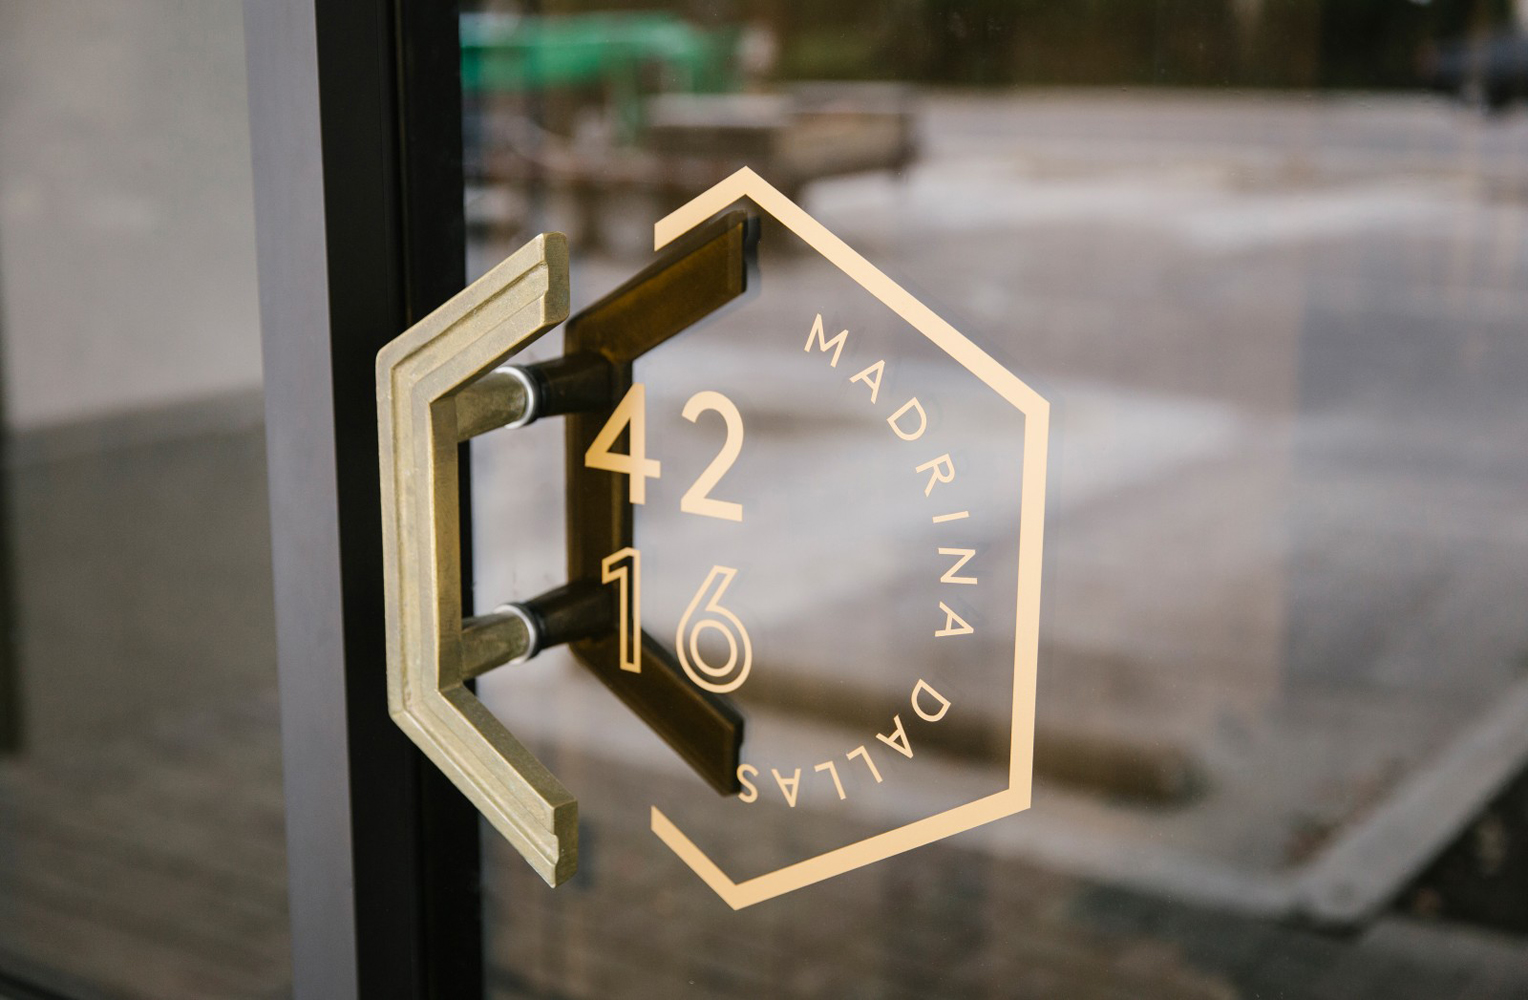 Brand identity and signage for French inspired Mexican restaurant Madrina designed by Mast